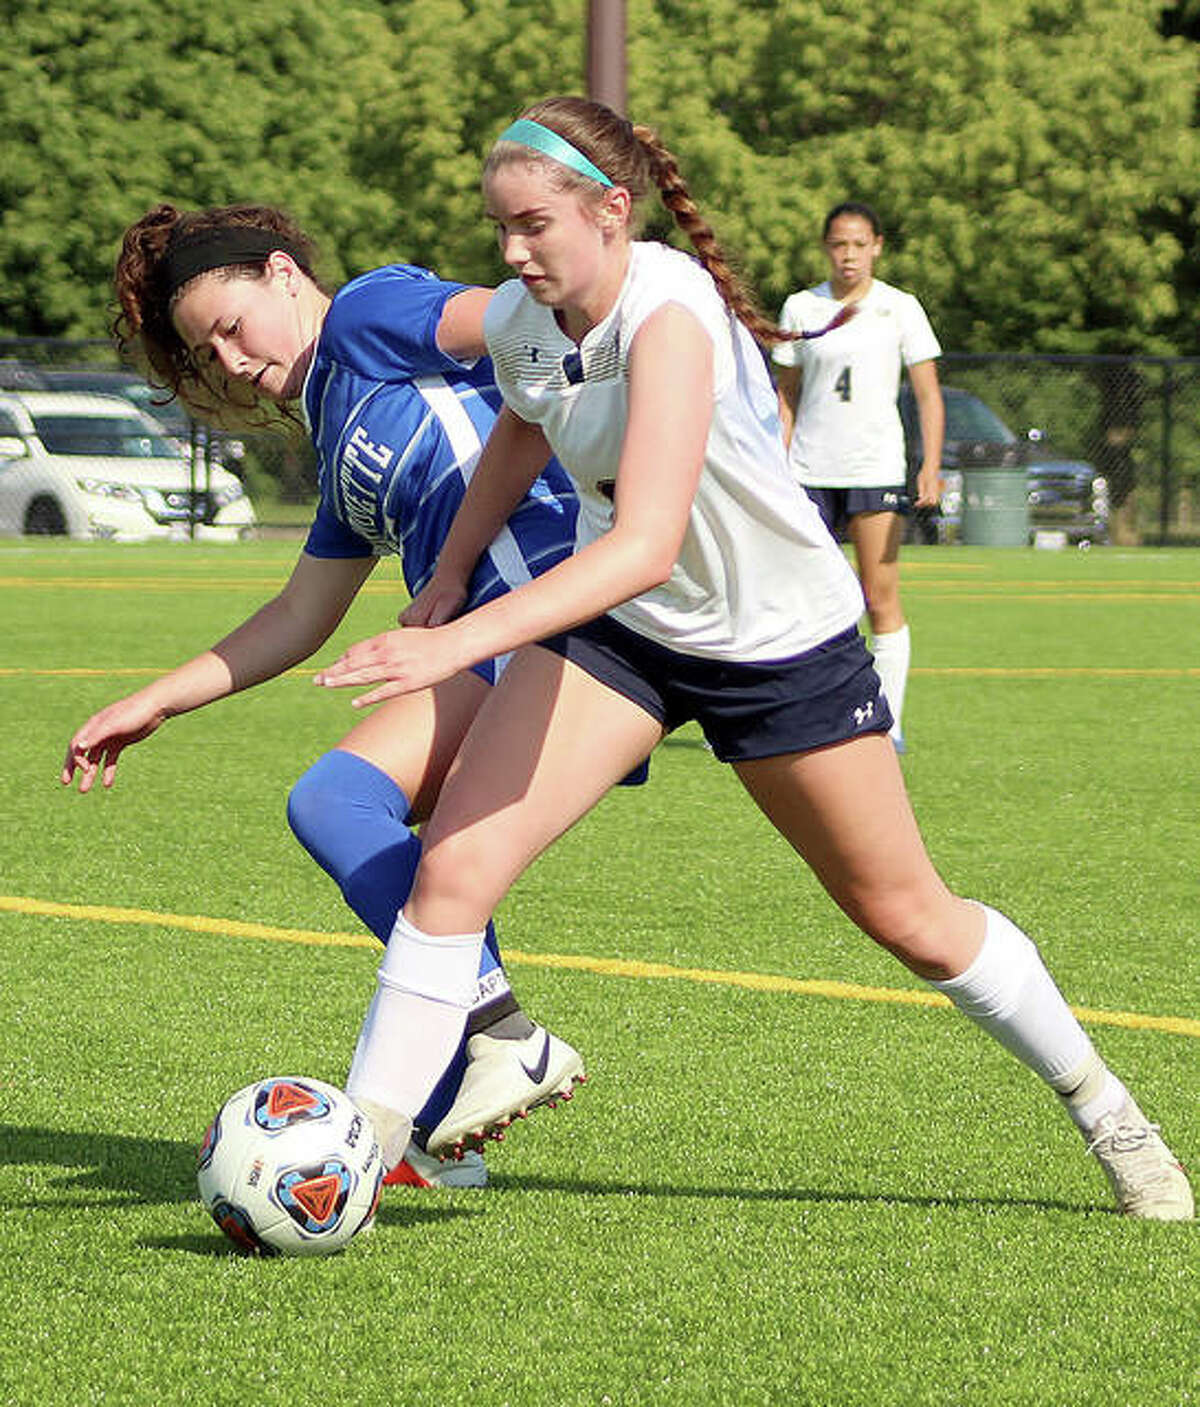 Madelyn Smith of Marquette, left, battles for the ball with McGivney's Adelyn Speight Friday at Gordon Moore Park.